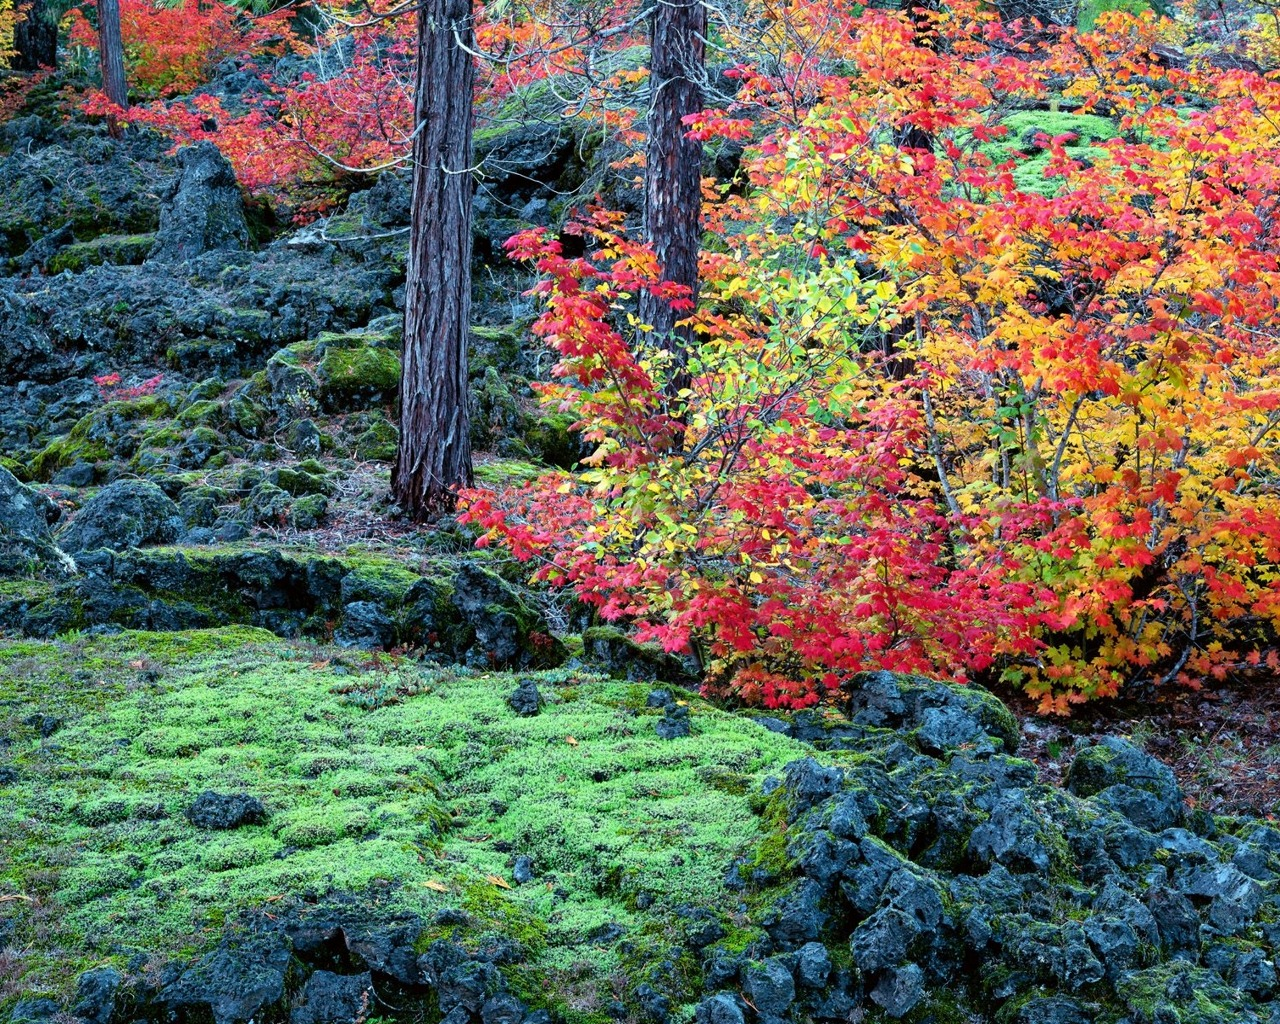 Wallpaper And Image: 40 Beautiful Autumn Wallpapers 1280 X